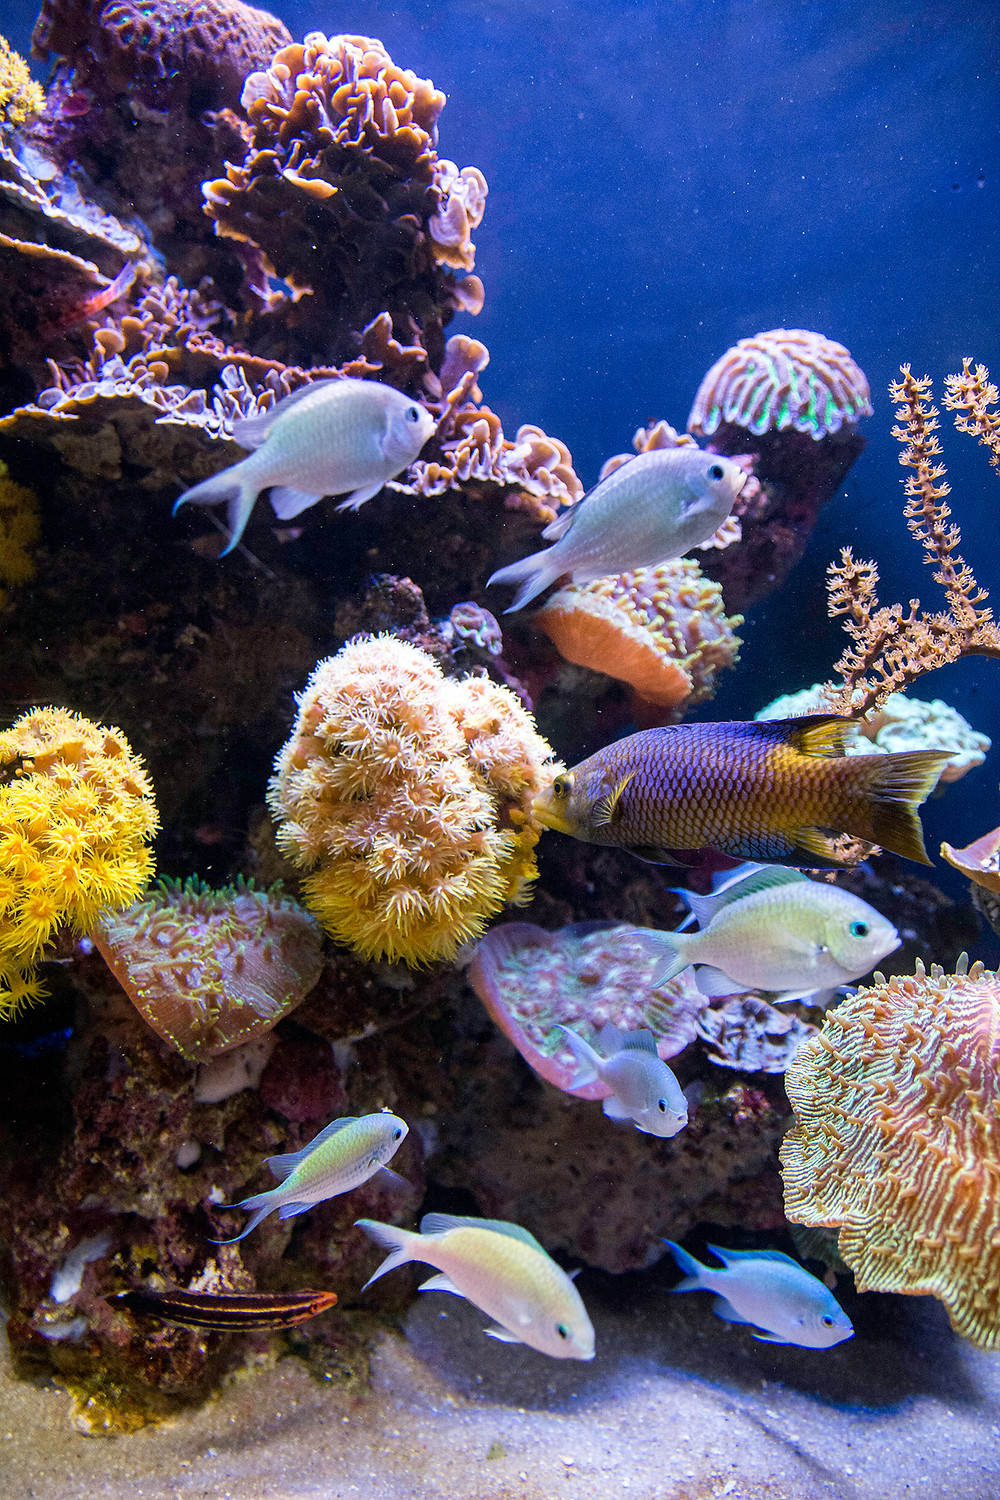 Aquarium in Palma de Mallorca